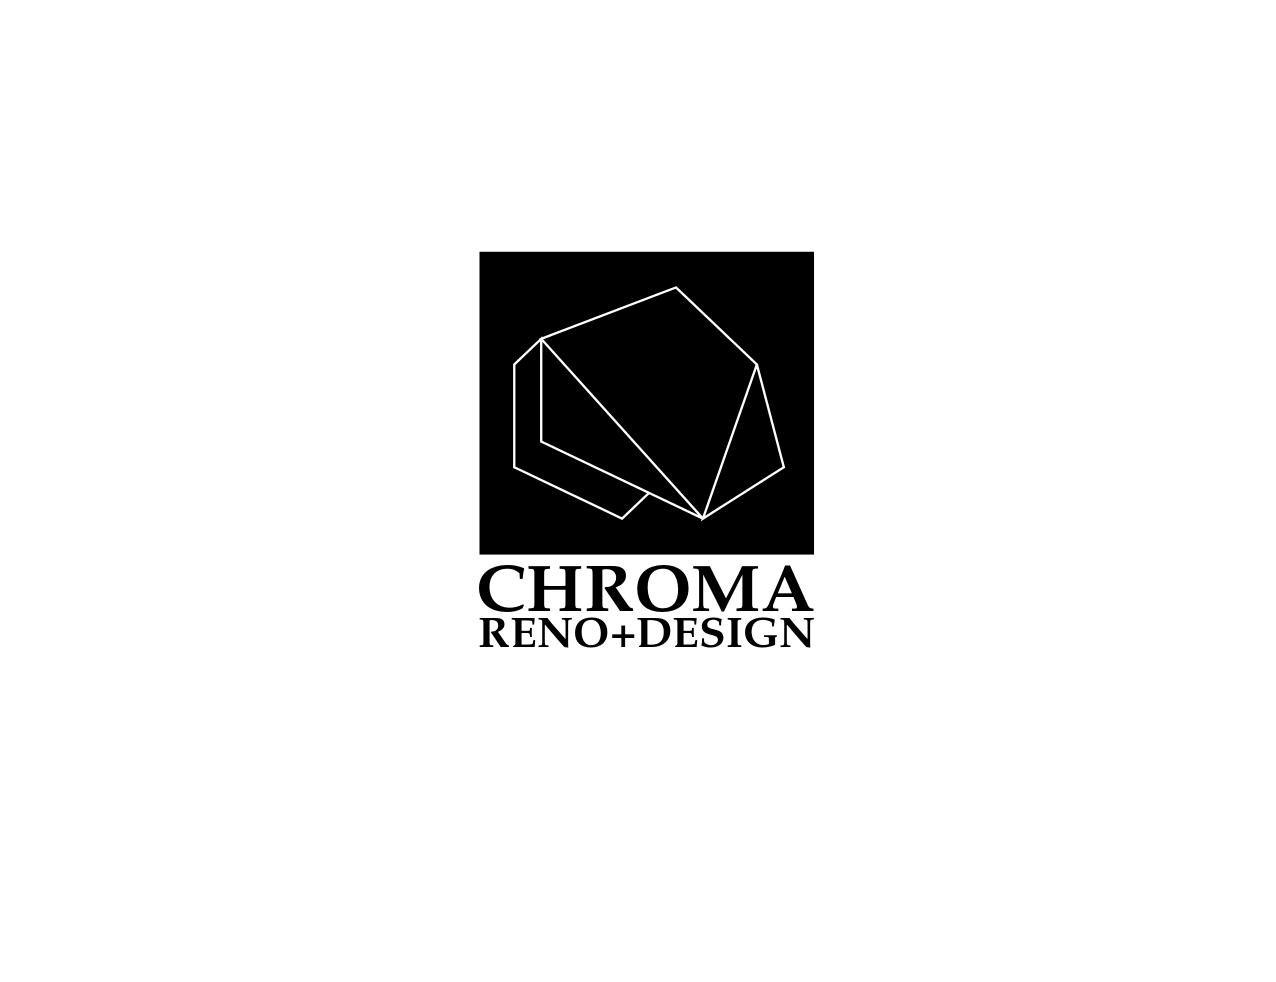 Logo Design by JaroslavProcka - Entry No. 316 in the Logo Design Contest Inspiring Logo Design for Chroma Reno+Design.